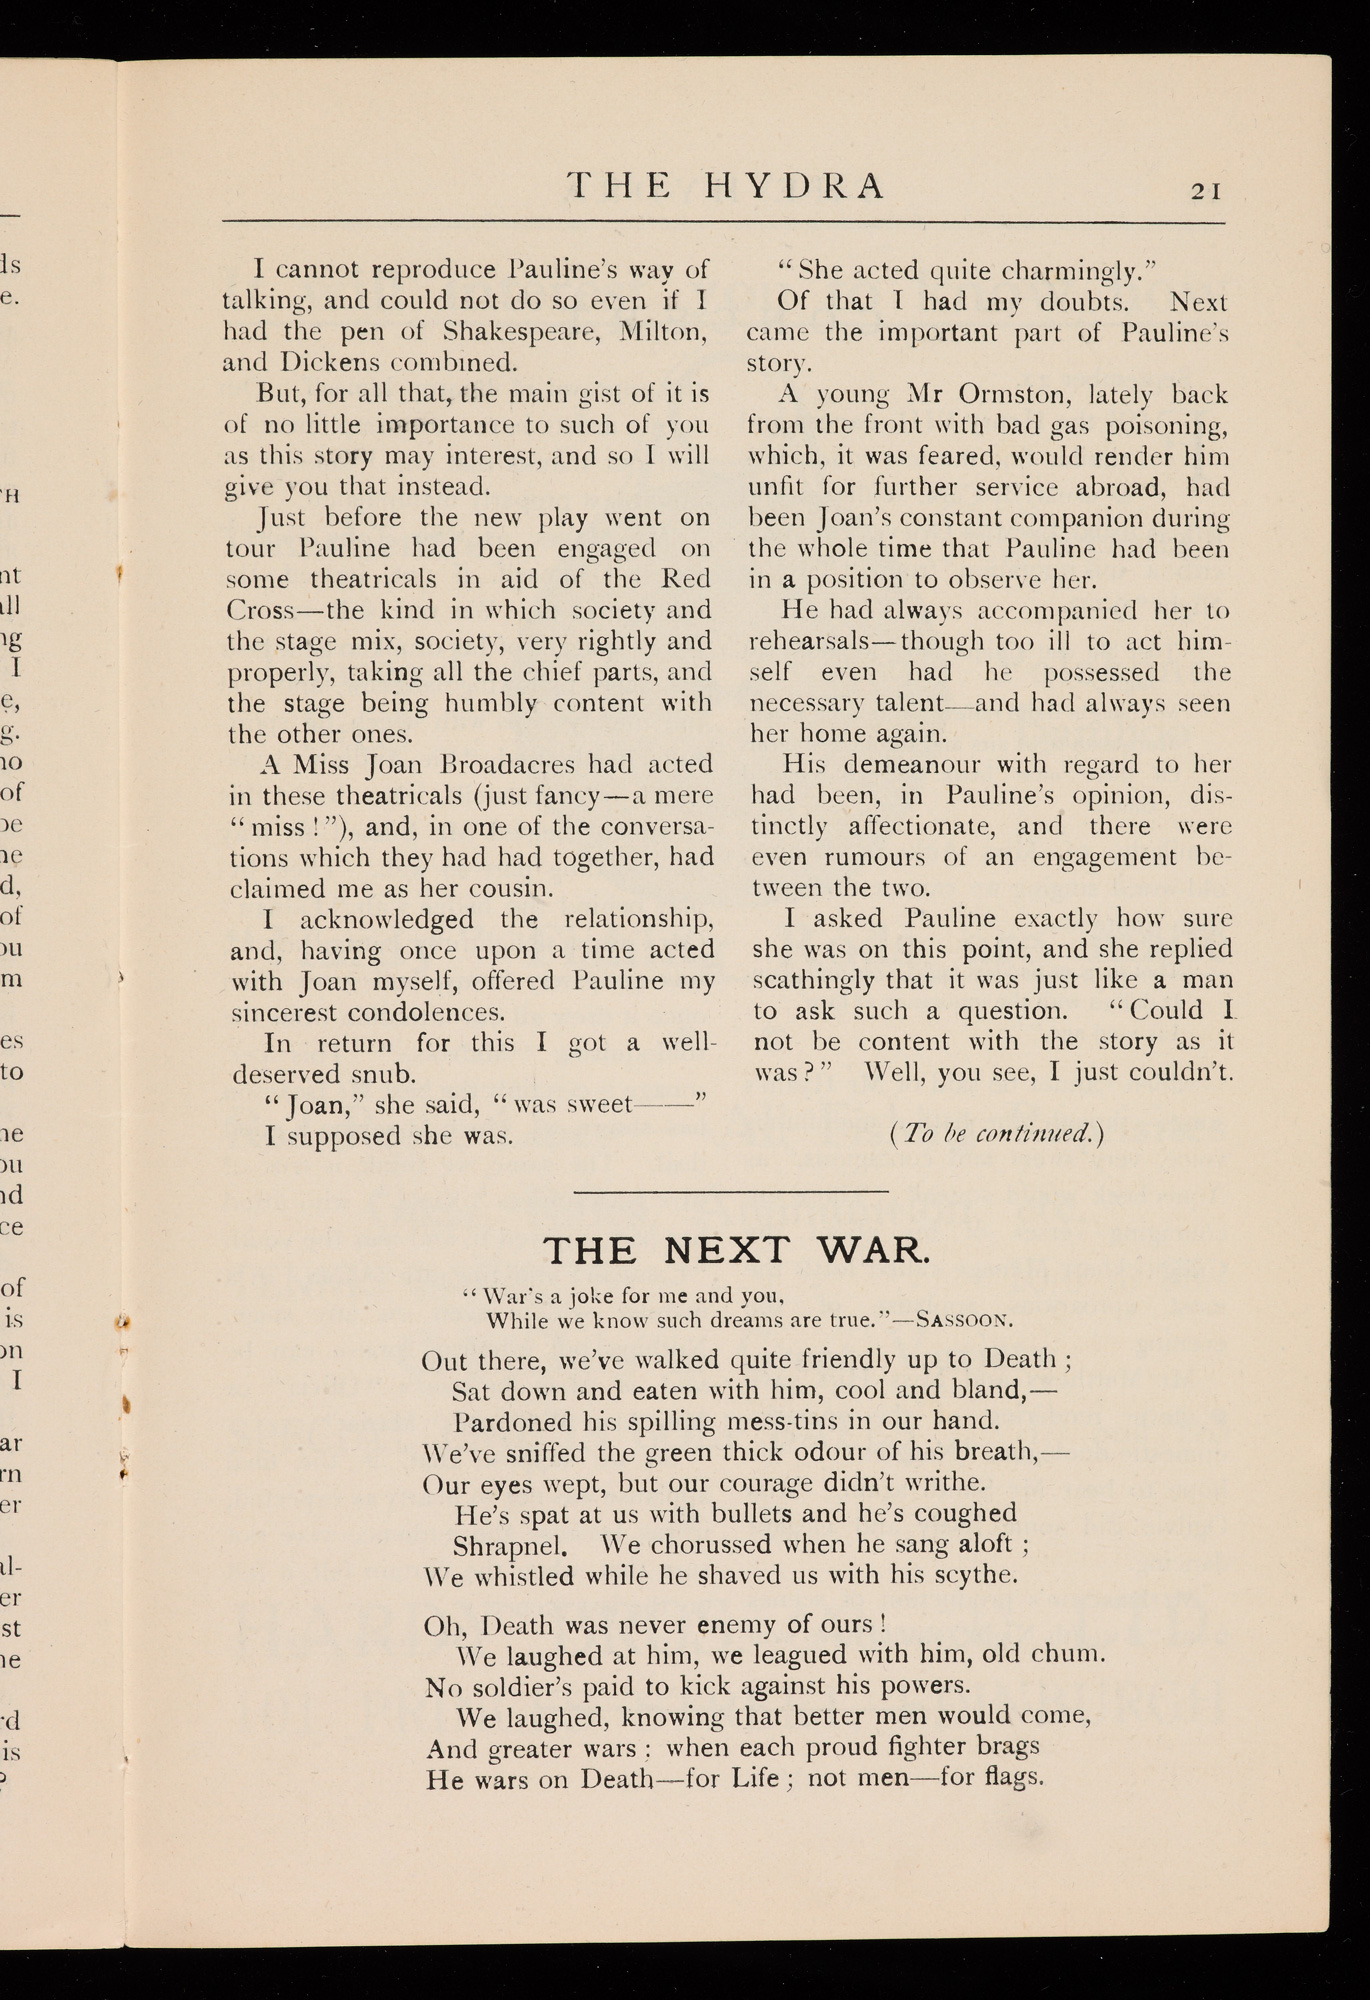 'The Next War' by Wilfred Owen, published in The Hydra